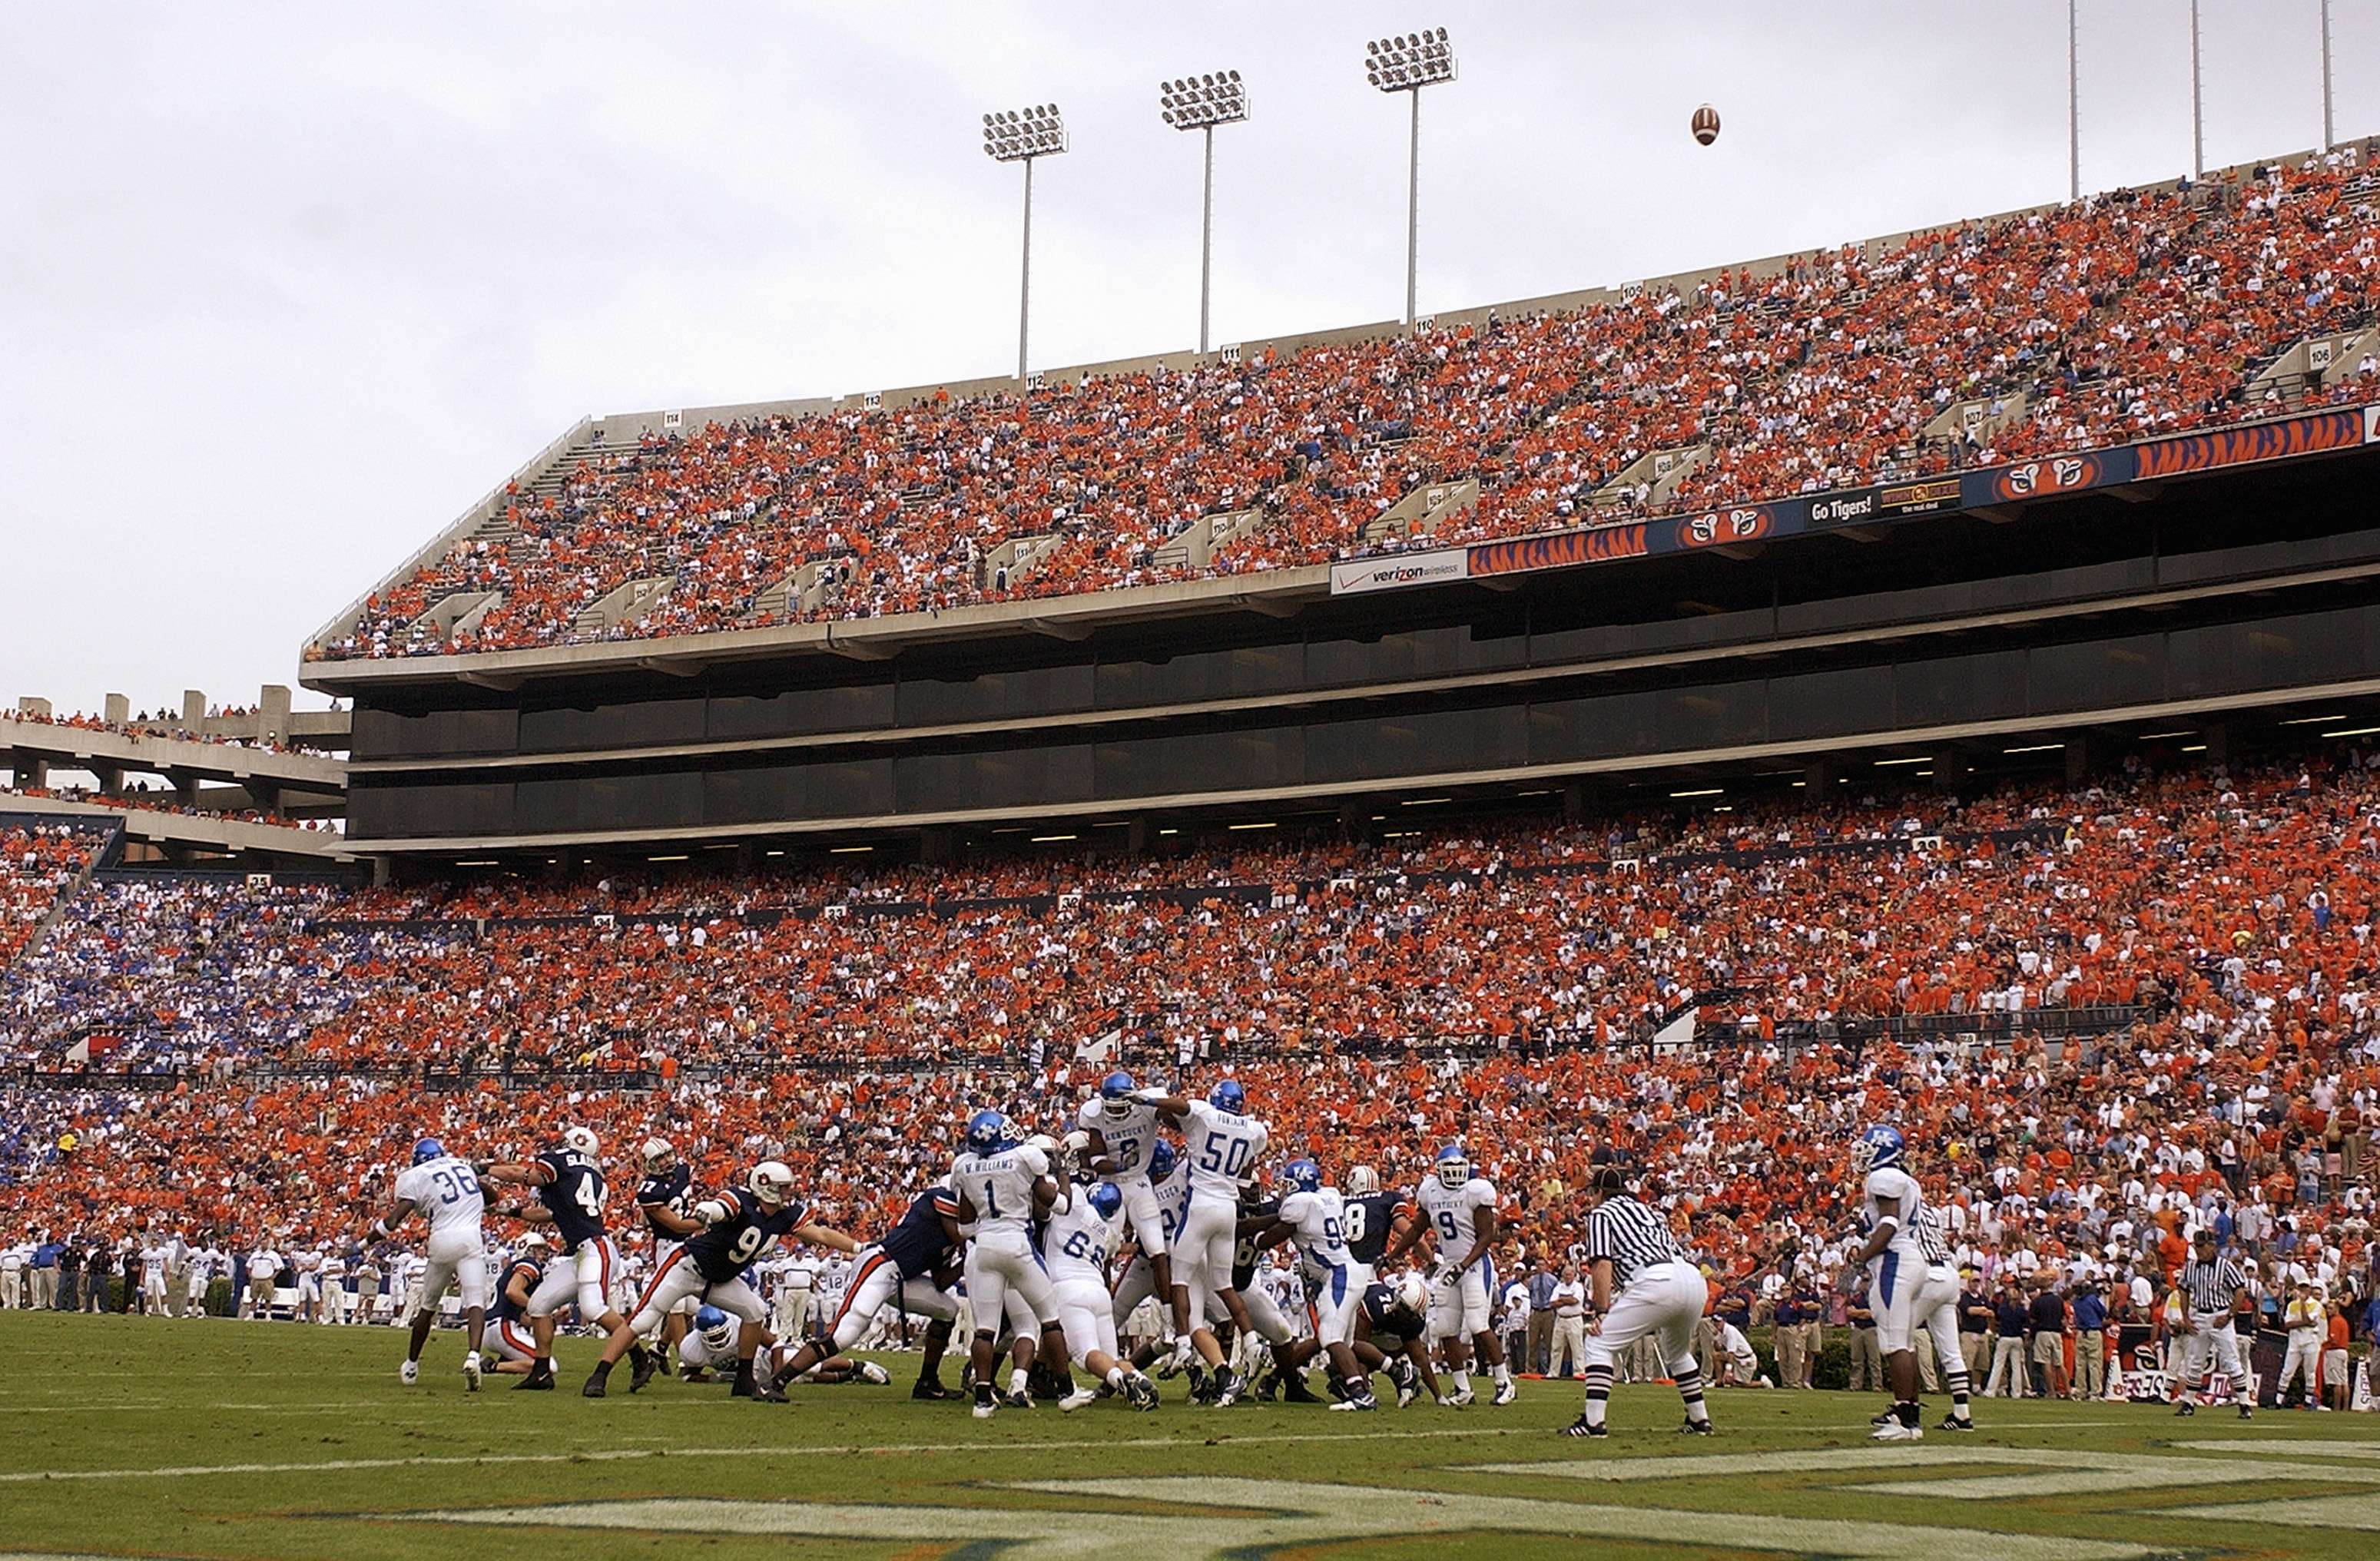 AUBURN, AL - OCTOBER 23:  General view of the game between the Auburn University Tigers and the University of Kentucky Wildcats on October 23, 2004 at Jordan-Hare stadium in Auburn, Alabama.  Auburn defeated Kentucky 41-10.  (Photo by Chris Graythen/Getty